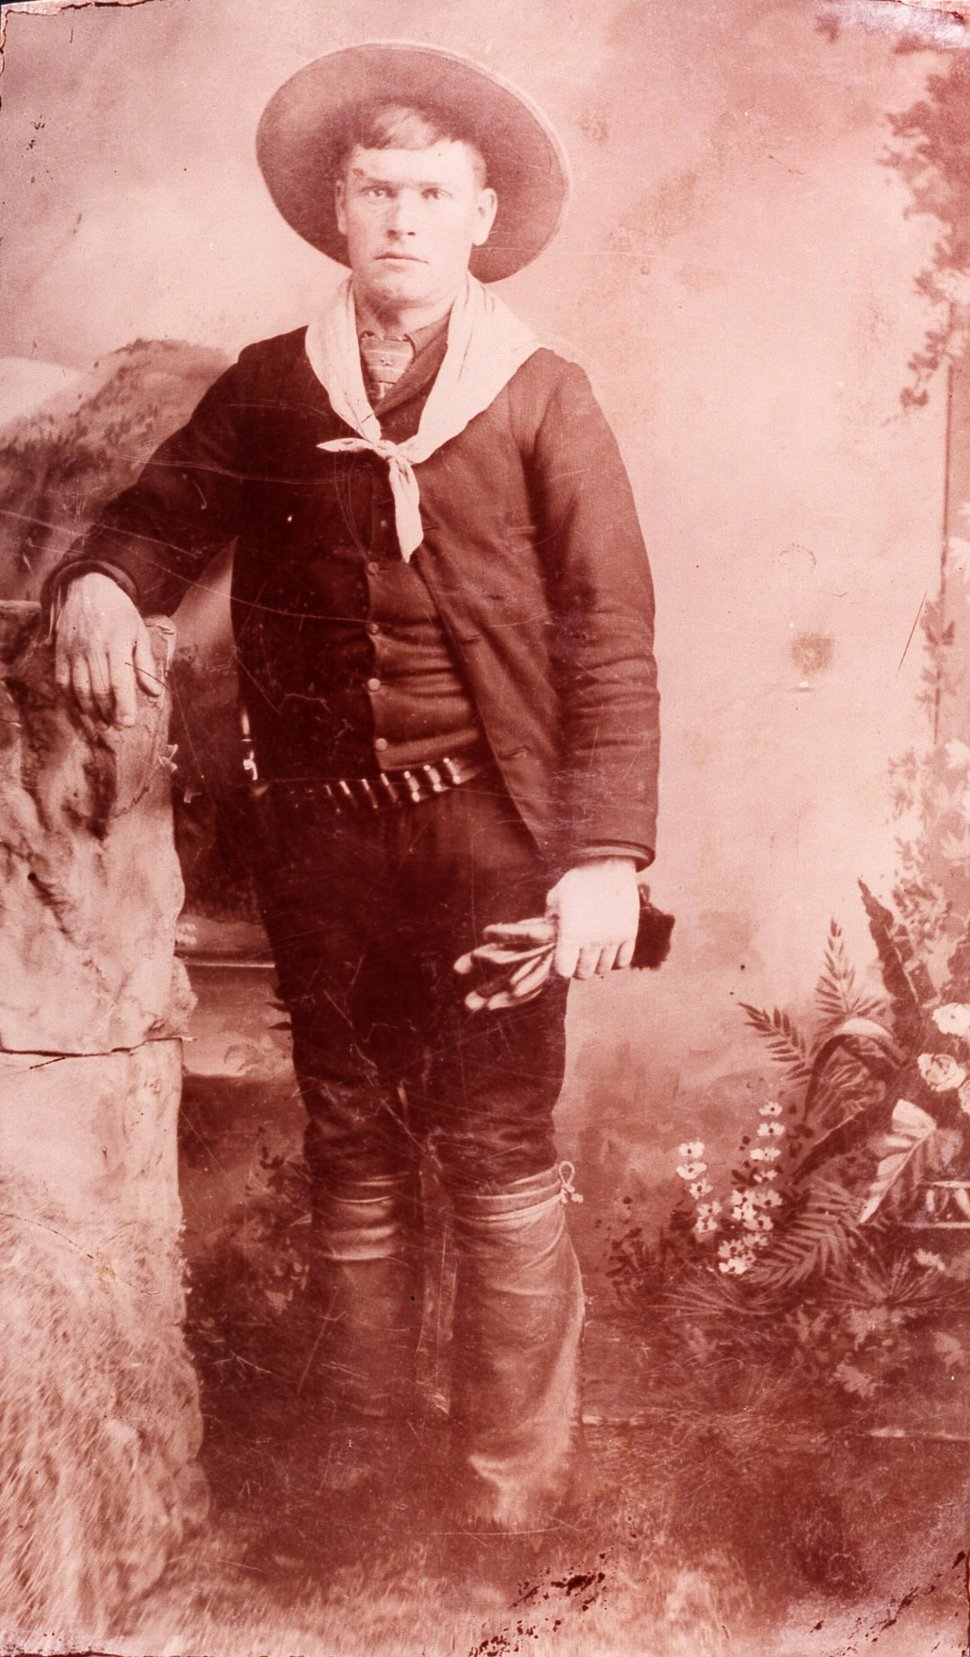 (Courtesy | Uintah County Library Regional History Center) Butch Cassidy as a young man, circa 1880s.